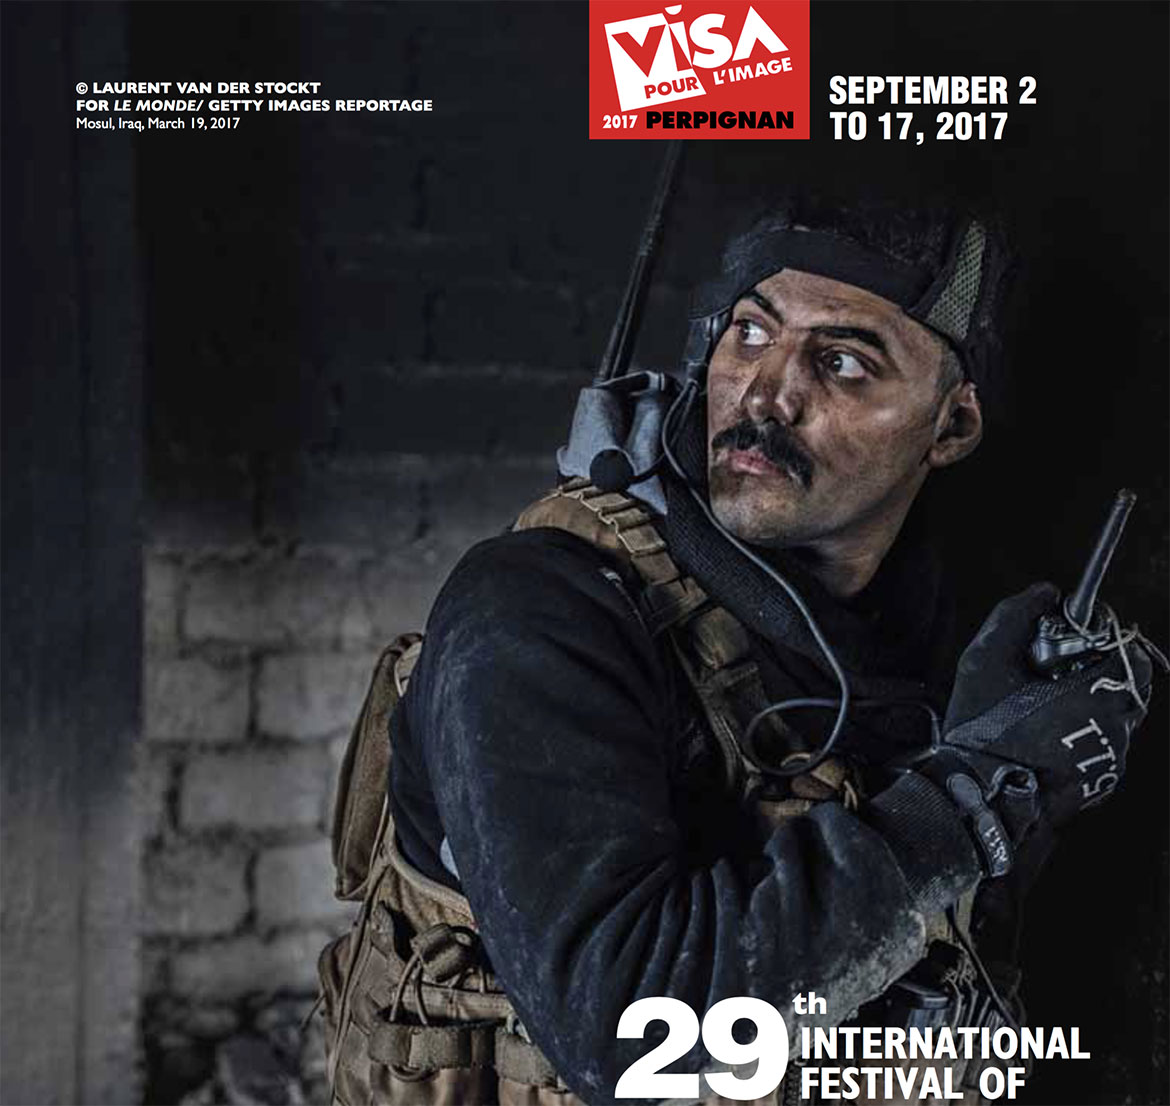 Visa pour l'Image 2017 – 29th International Festival of Photojournalism